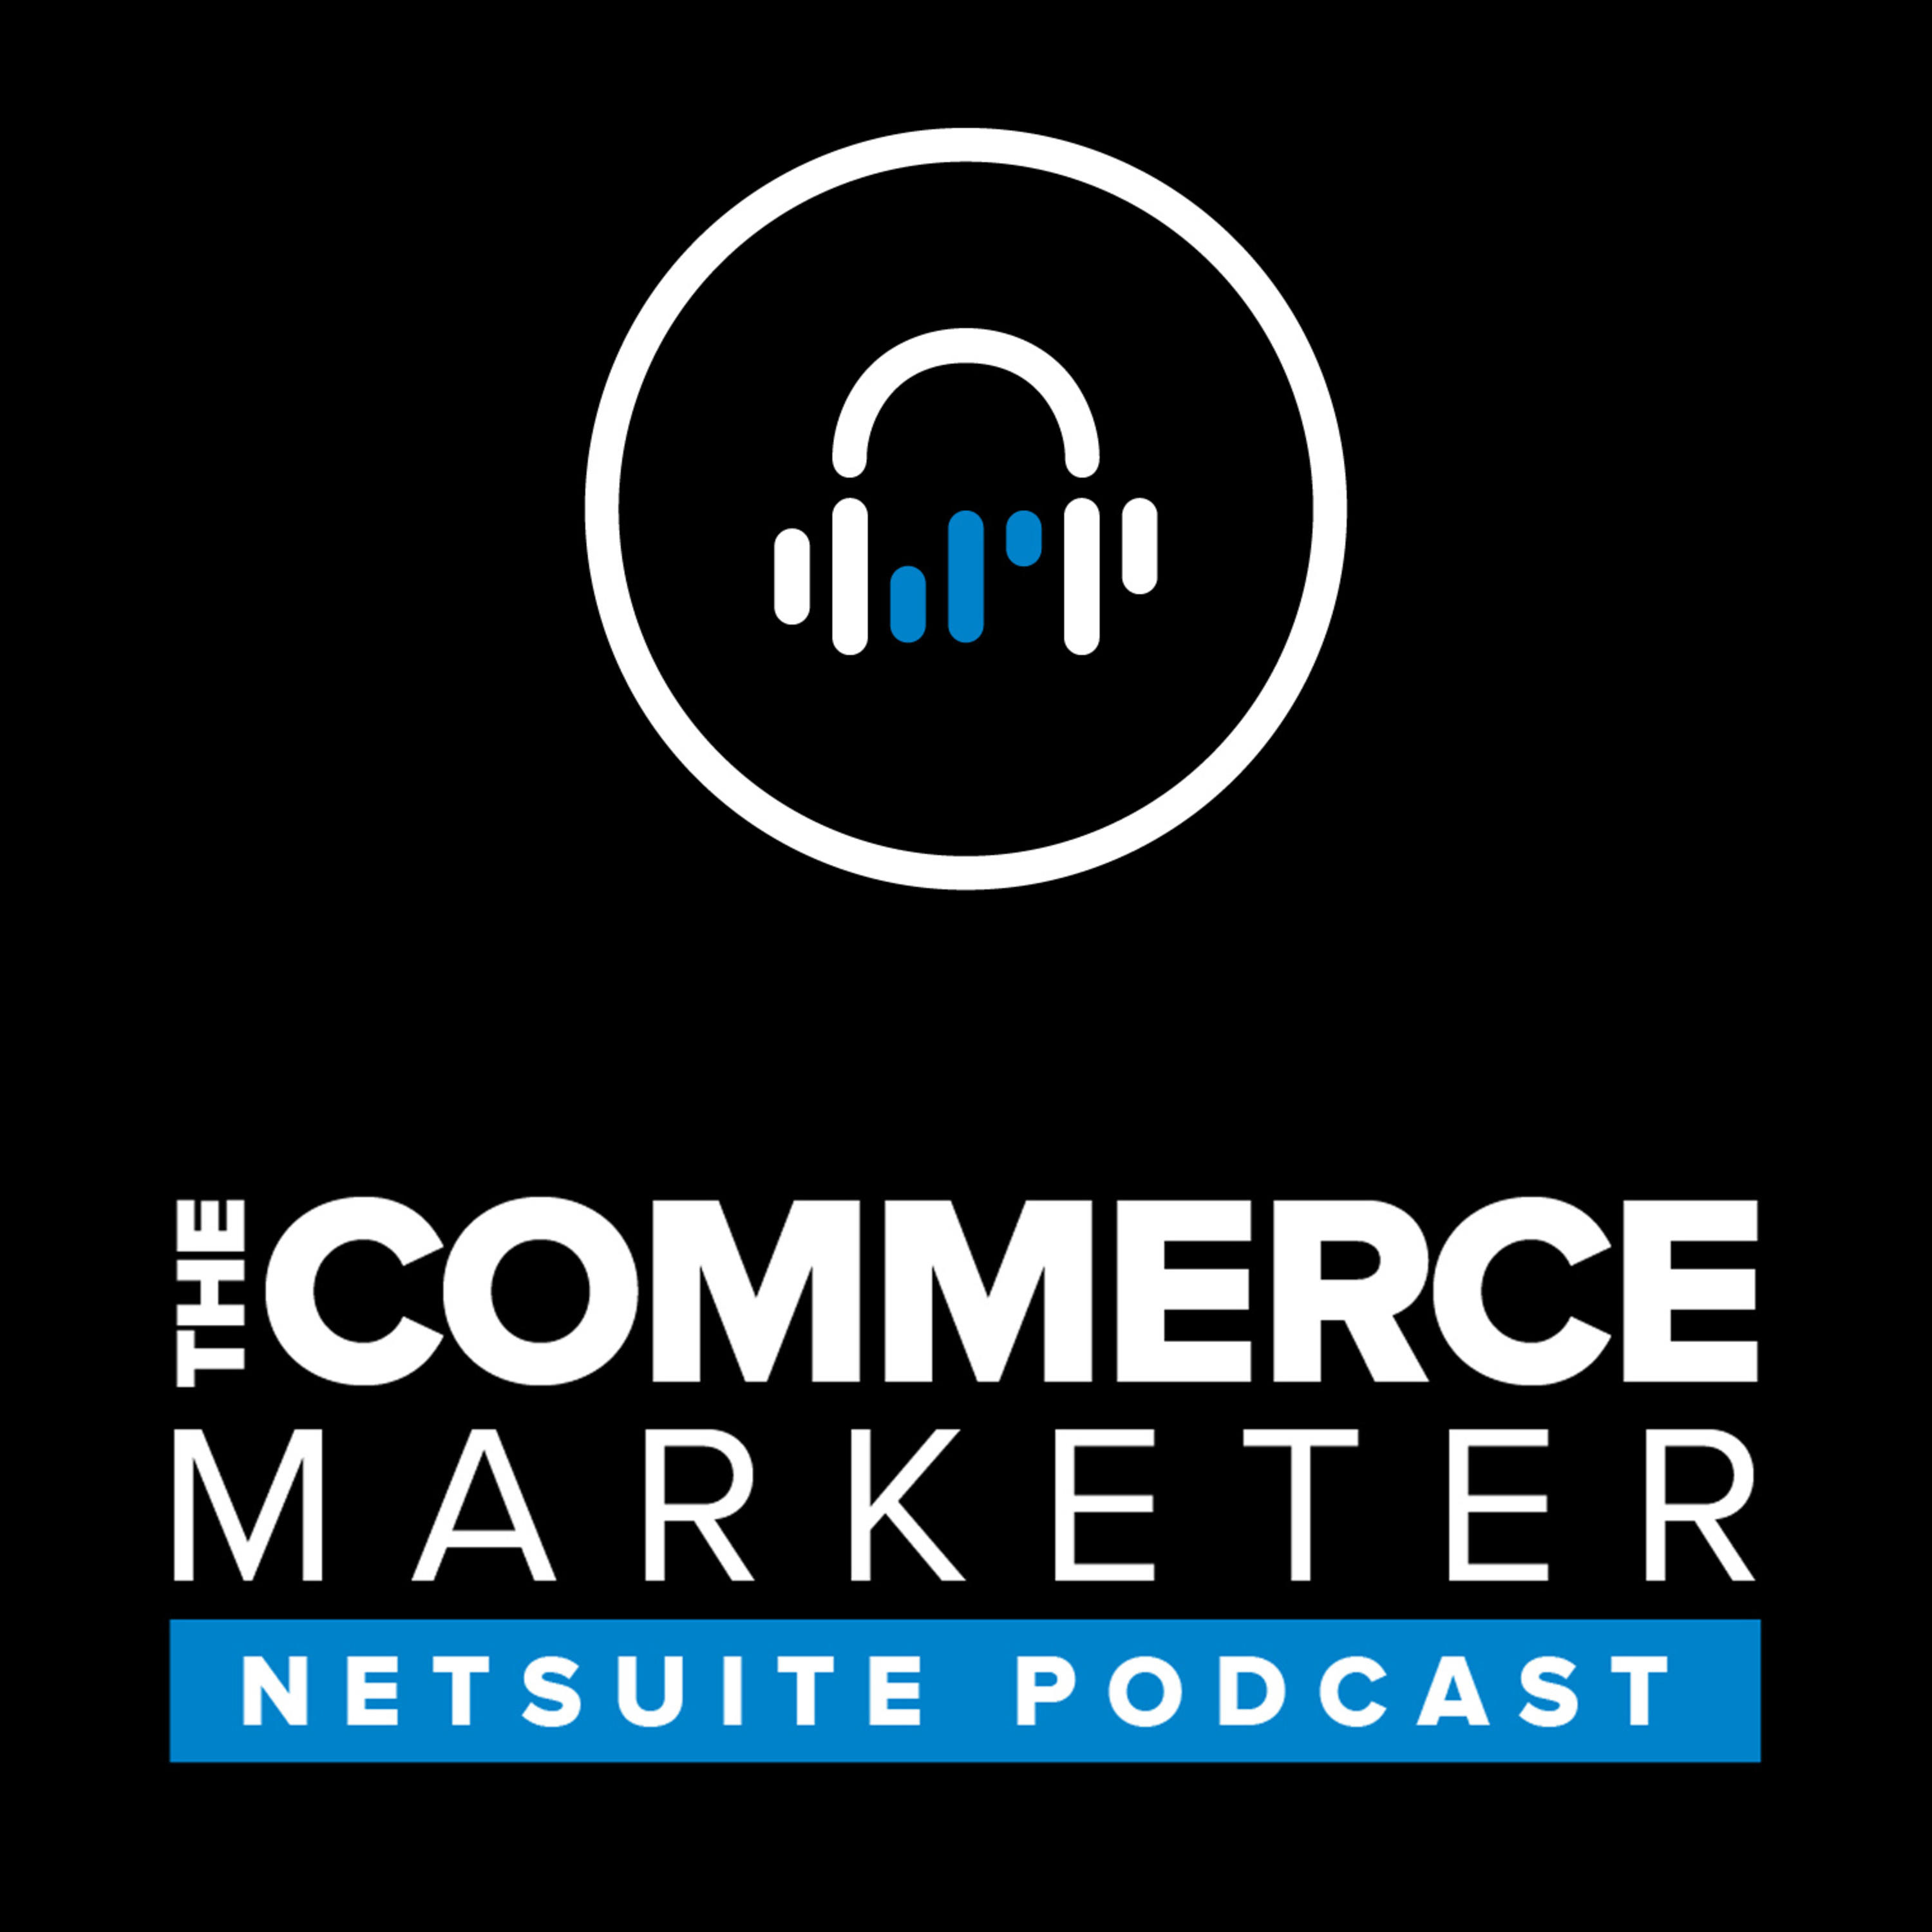 Ep. 053: Marketing to Different Customer Segments & Against Larger Retailers